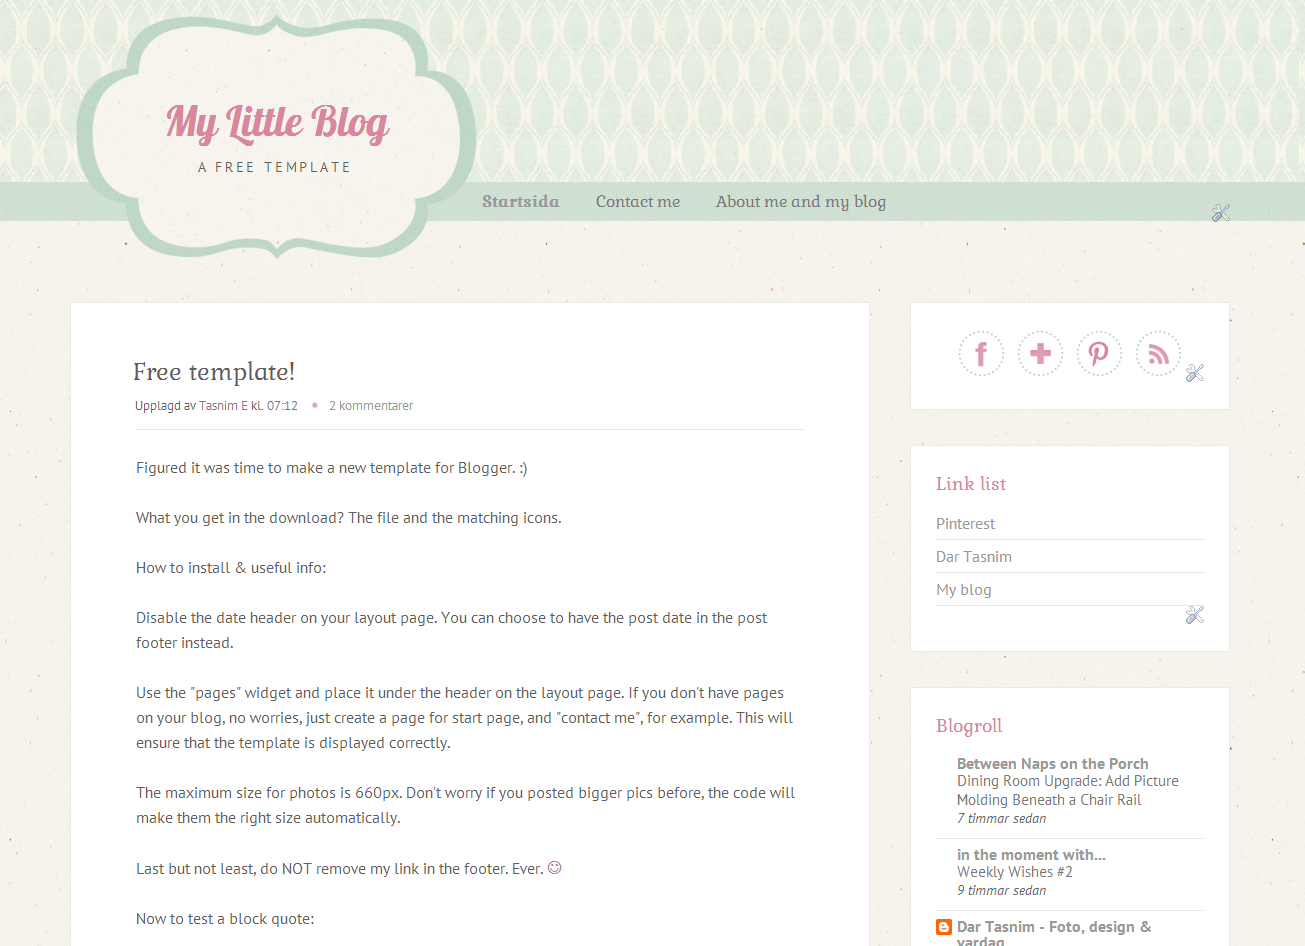 Free blogger template by tasnimez on deviantart free blogger template by tasnimez free blogger template by tasnimez pronofoot35fo Gallery